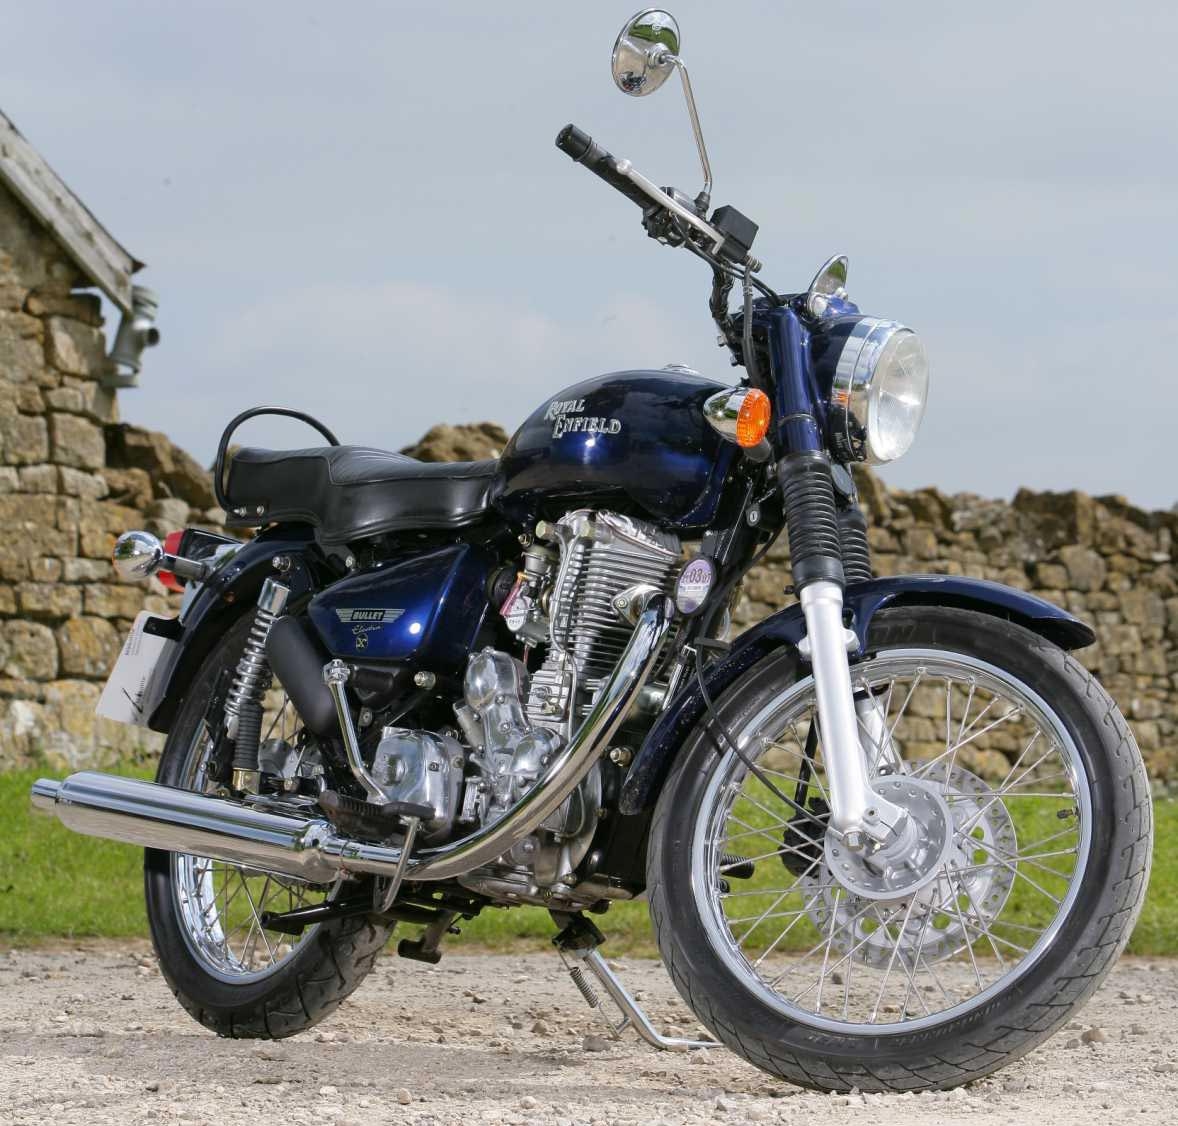 Royal Enfield Bullet 350 Army 2000 images #122950